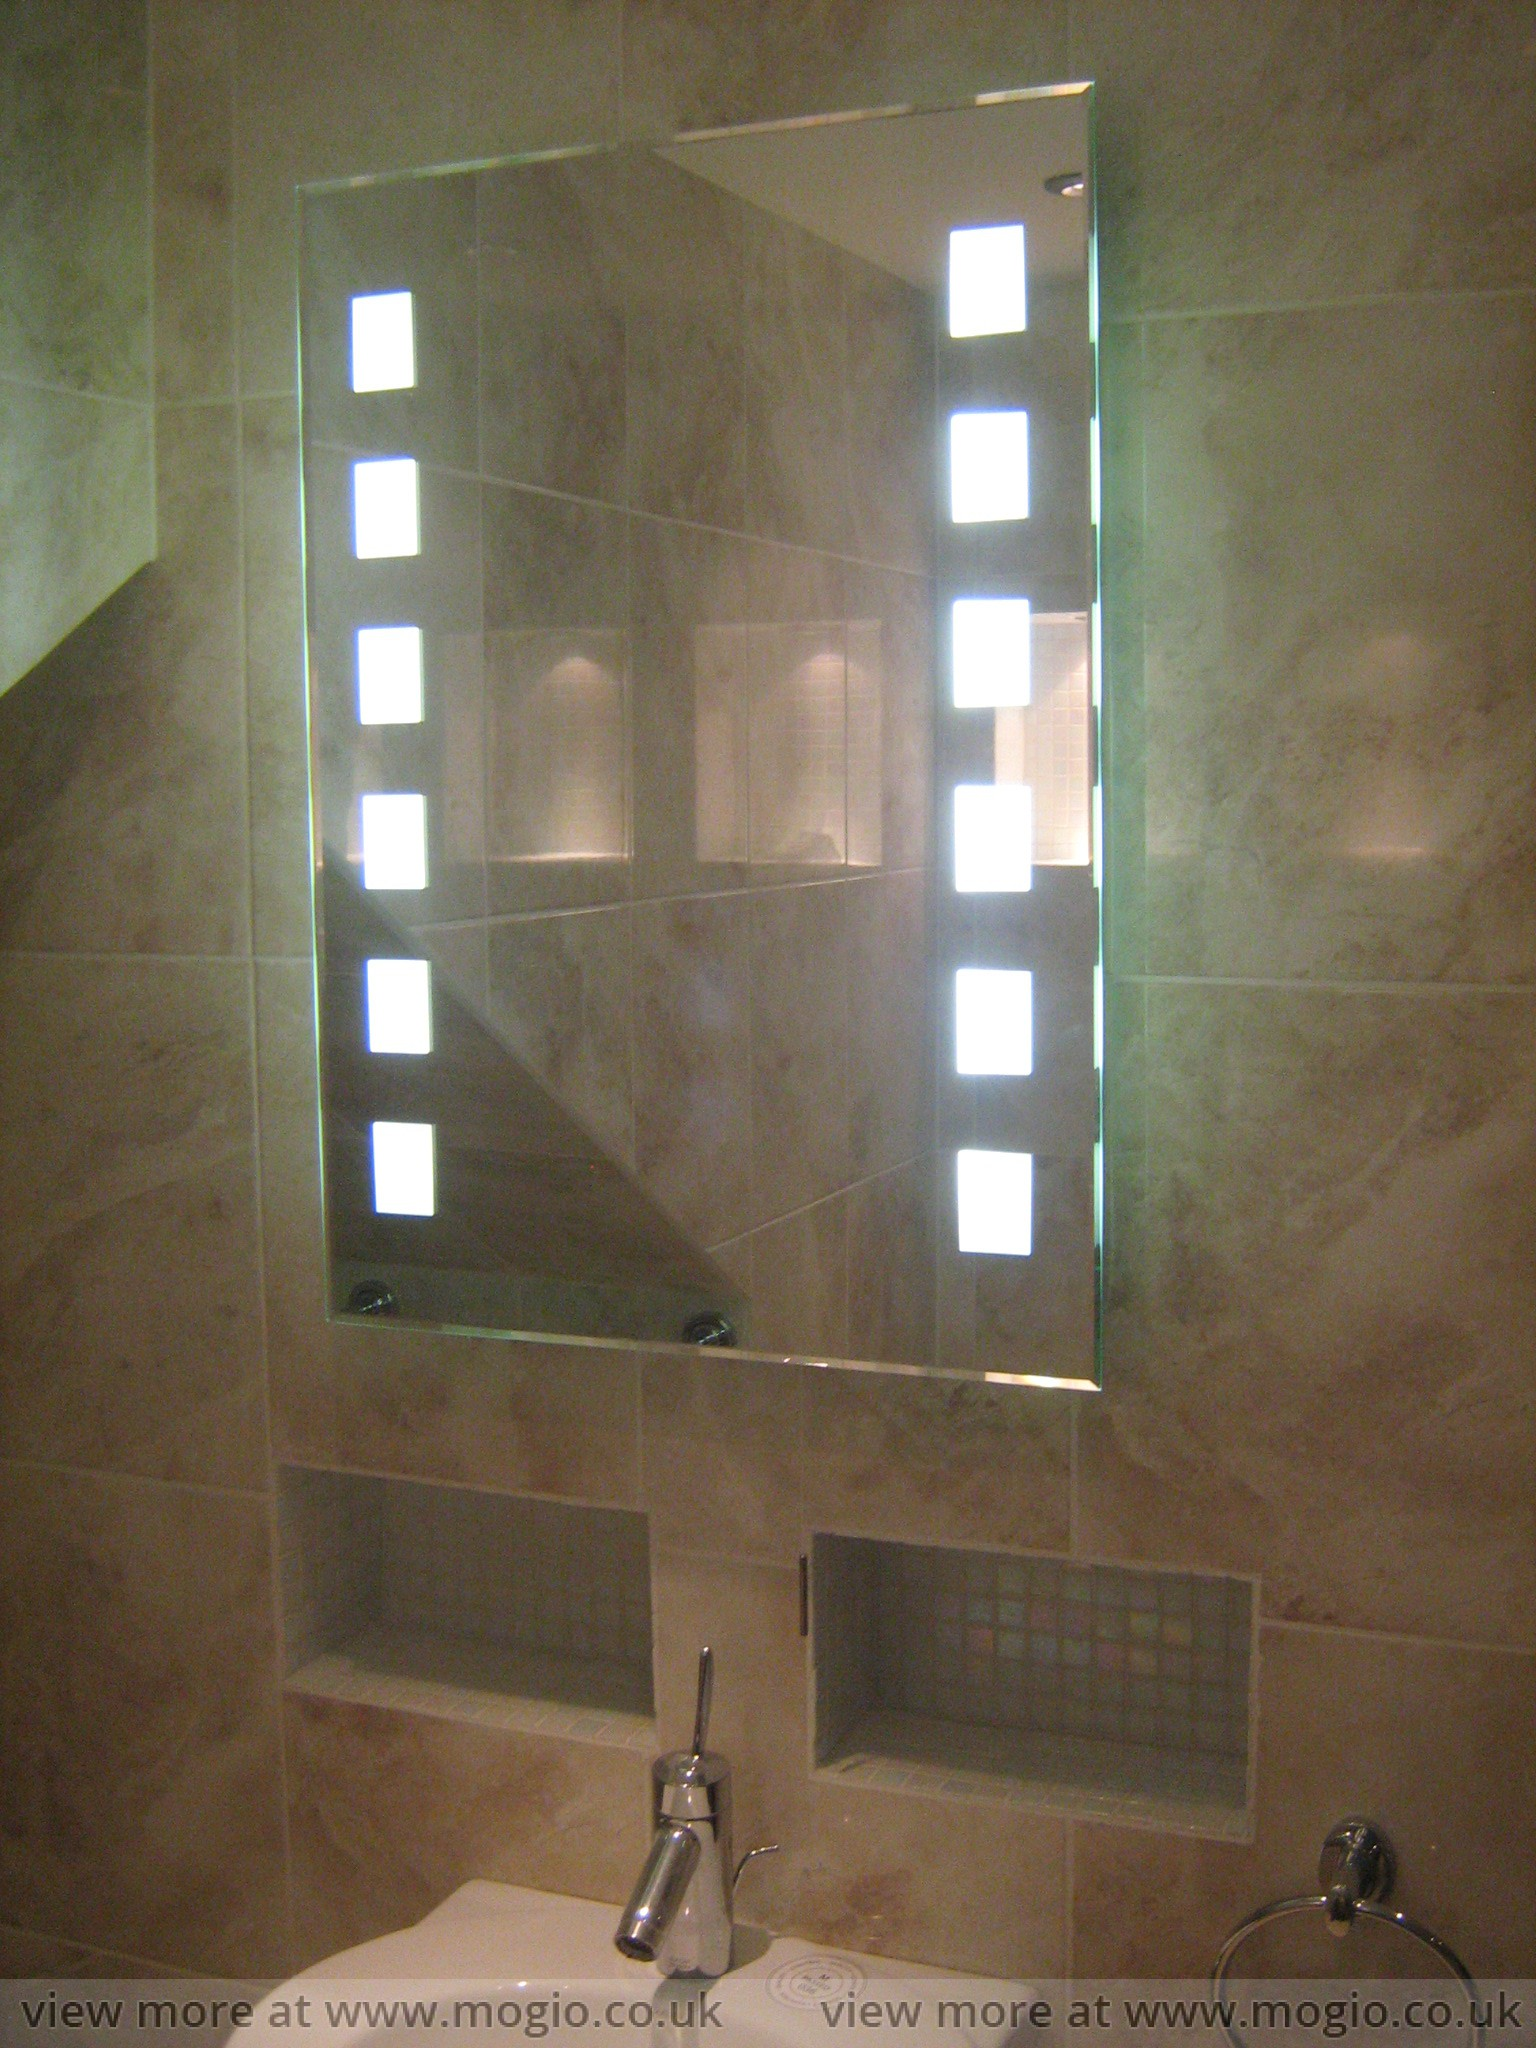 wall.lighting.wetroom.floor.drain